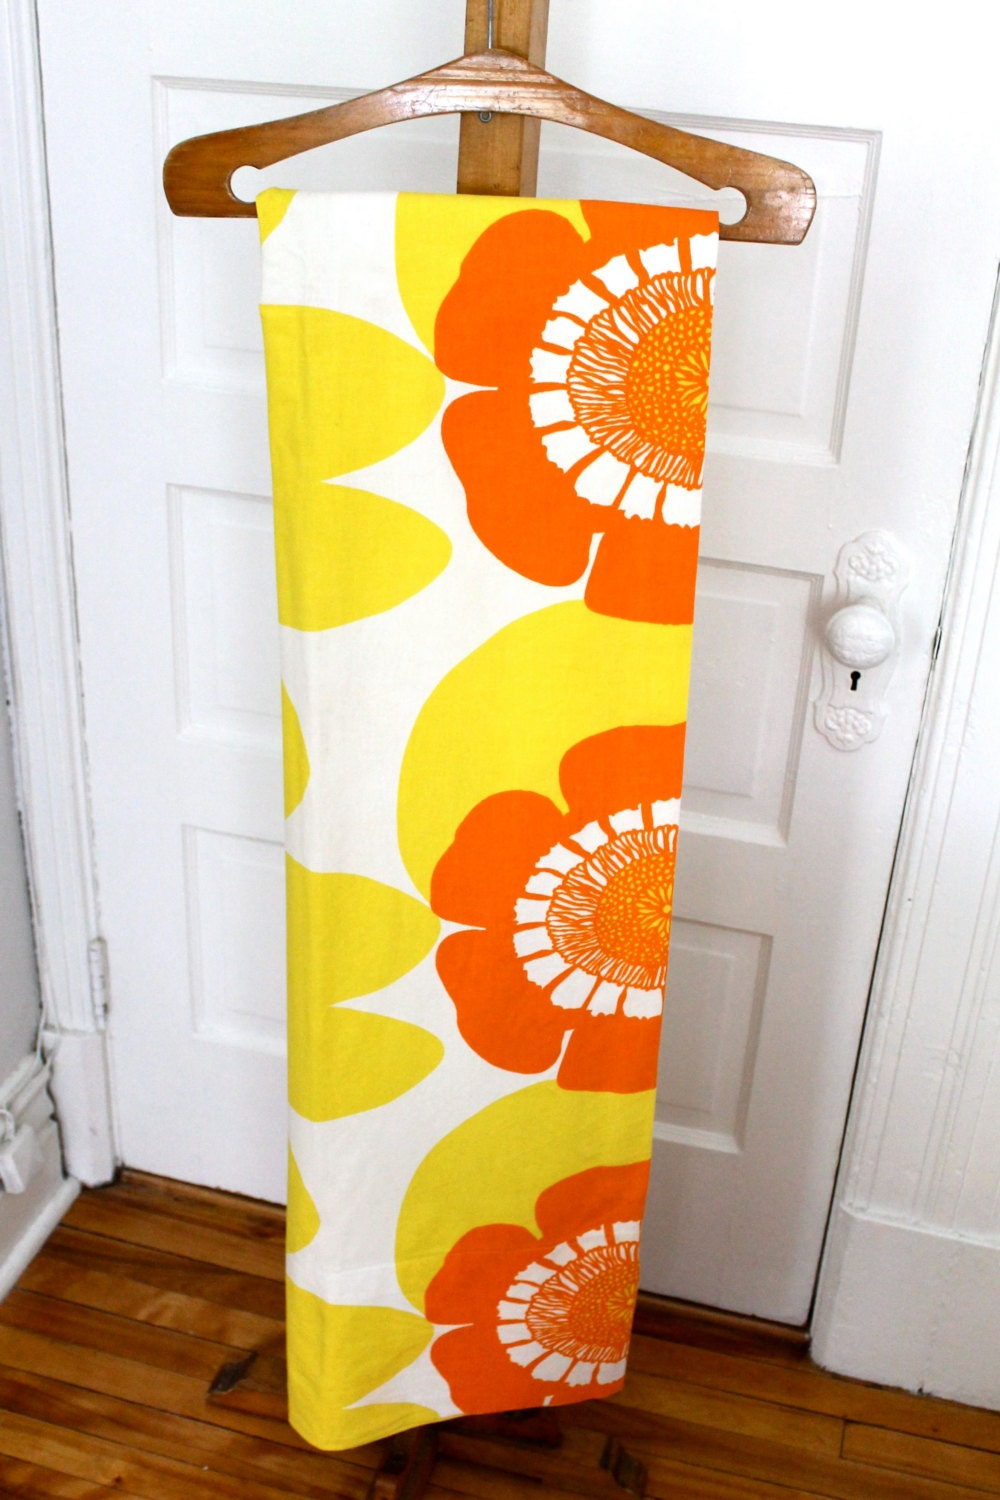 Vintage groovy fun curtains with graphic flowers yellow orange white - PourToujours